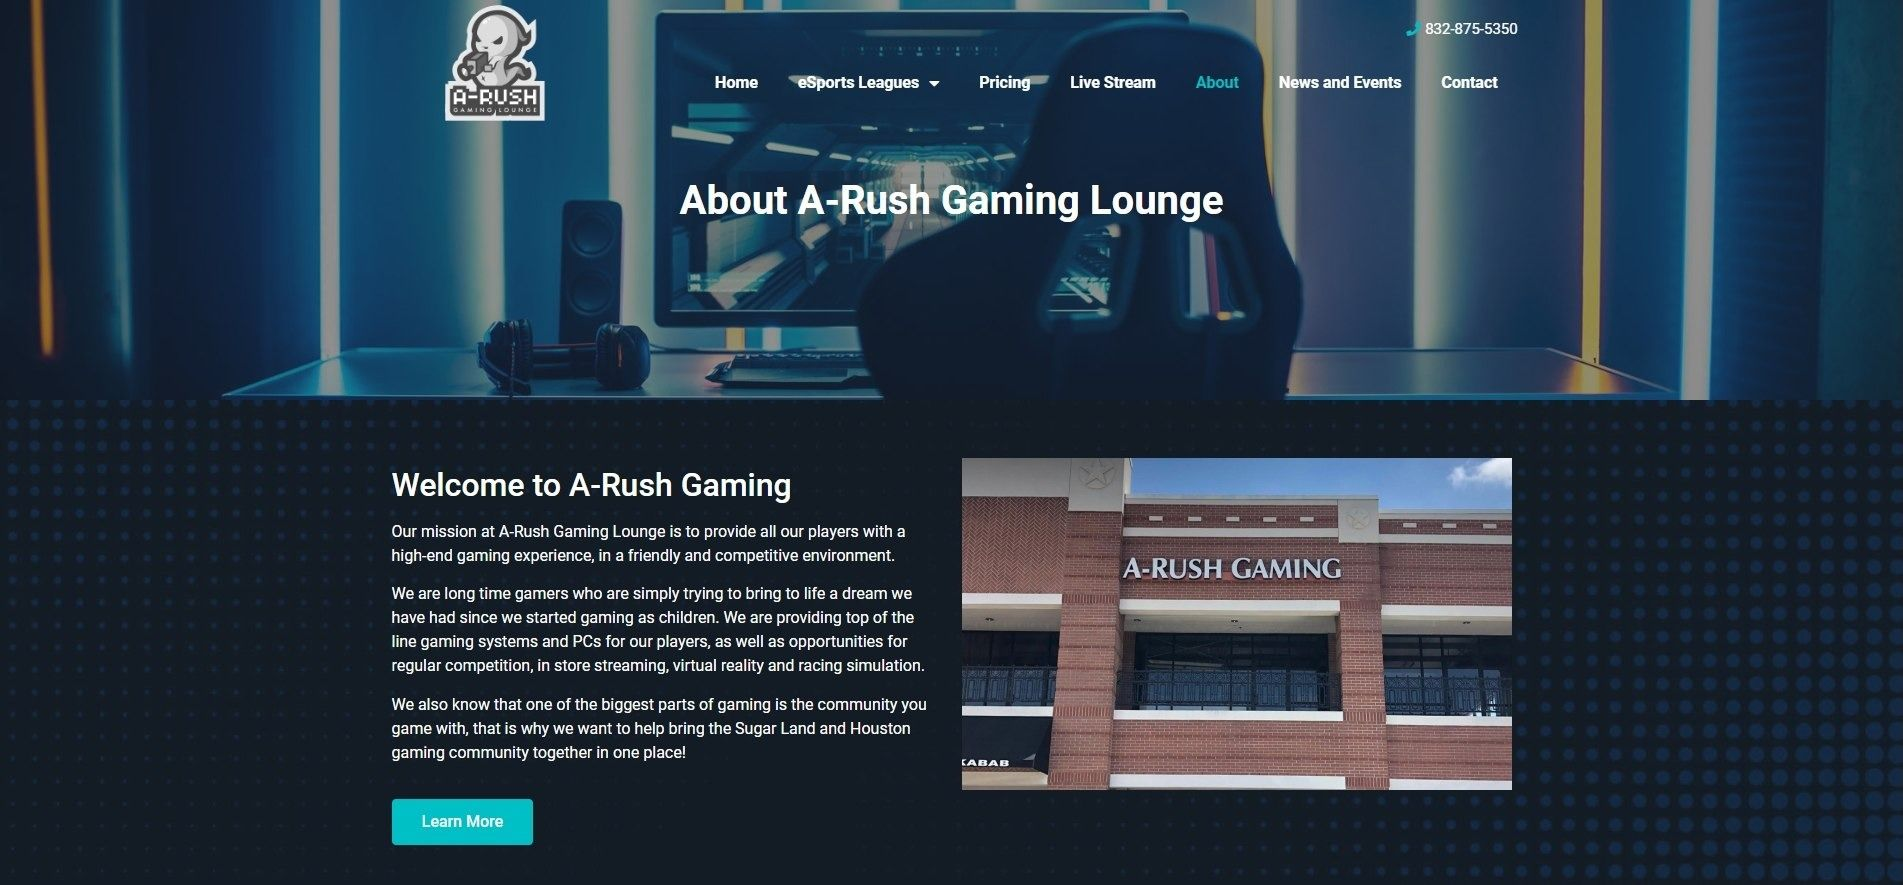 eSports Gaming Center About Page